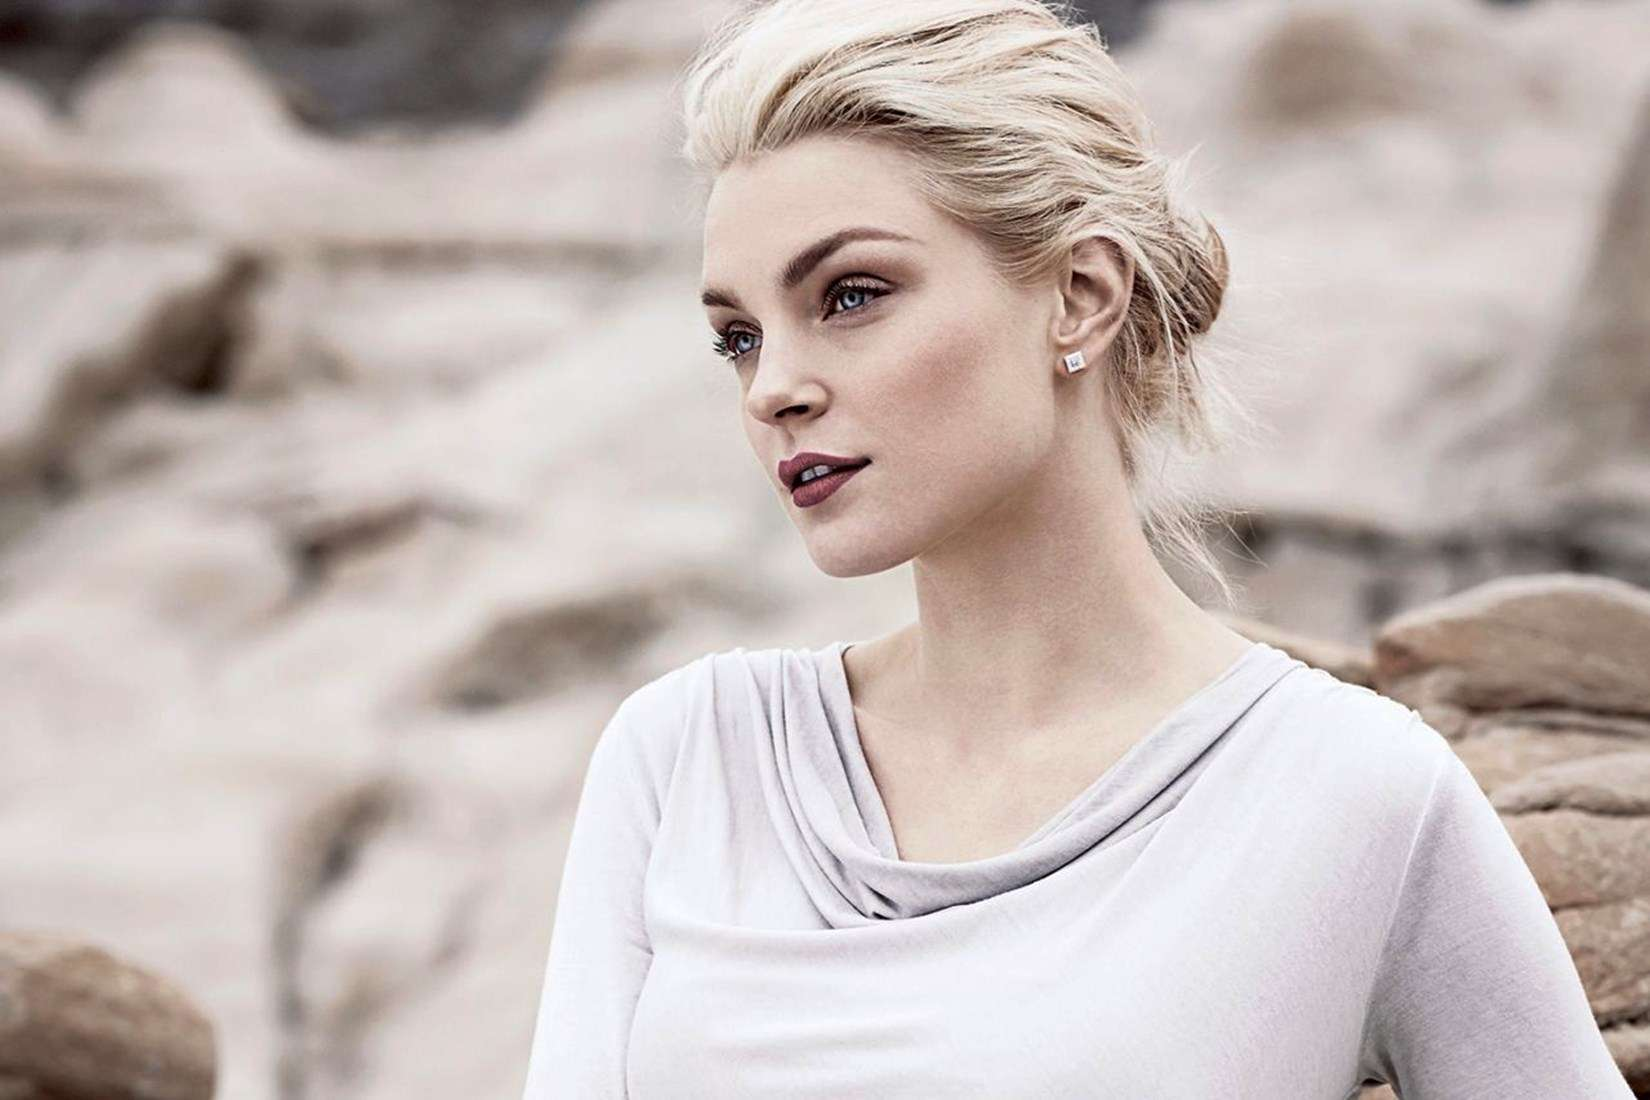 jessica stam makeup wallpaper 60107